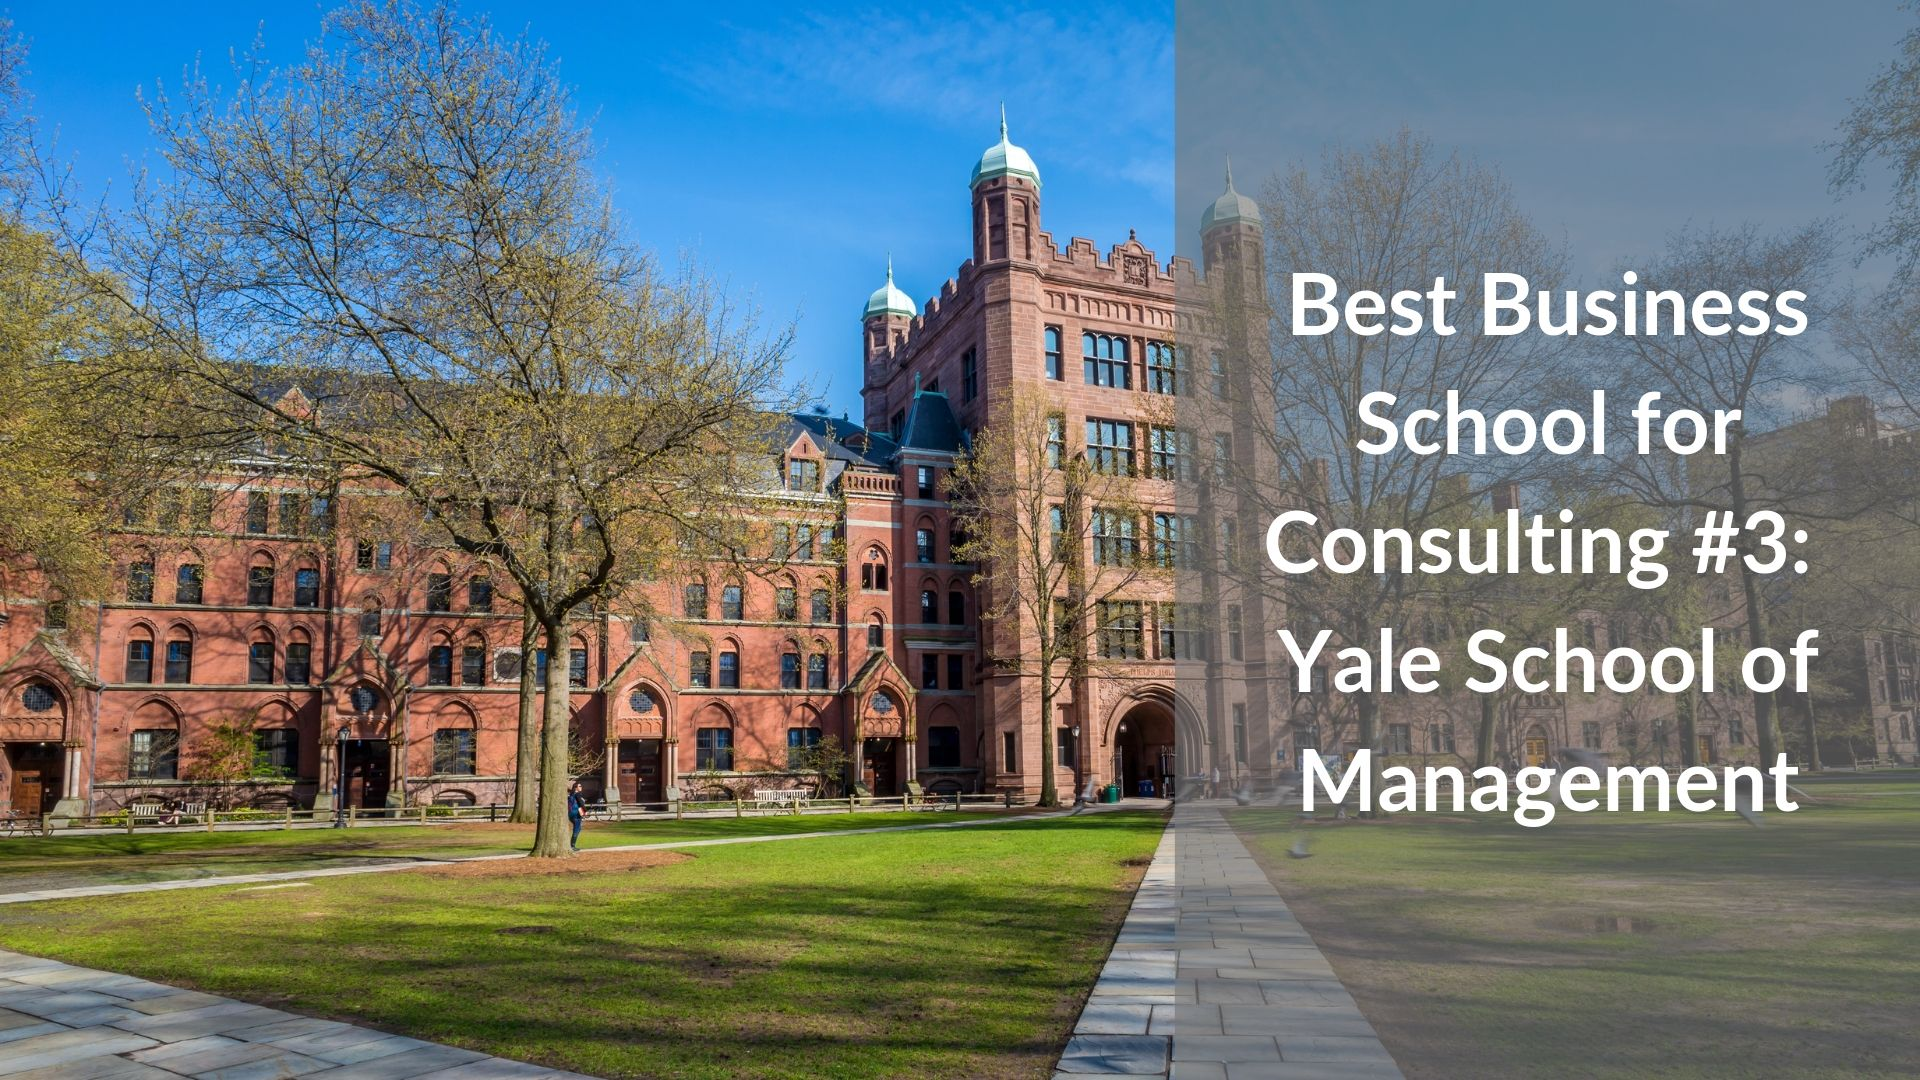 Best Business School for Consulting #3 - Yale School of Management